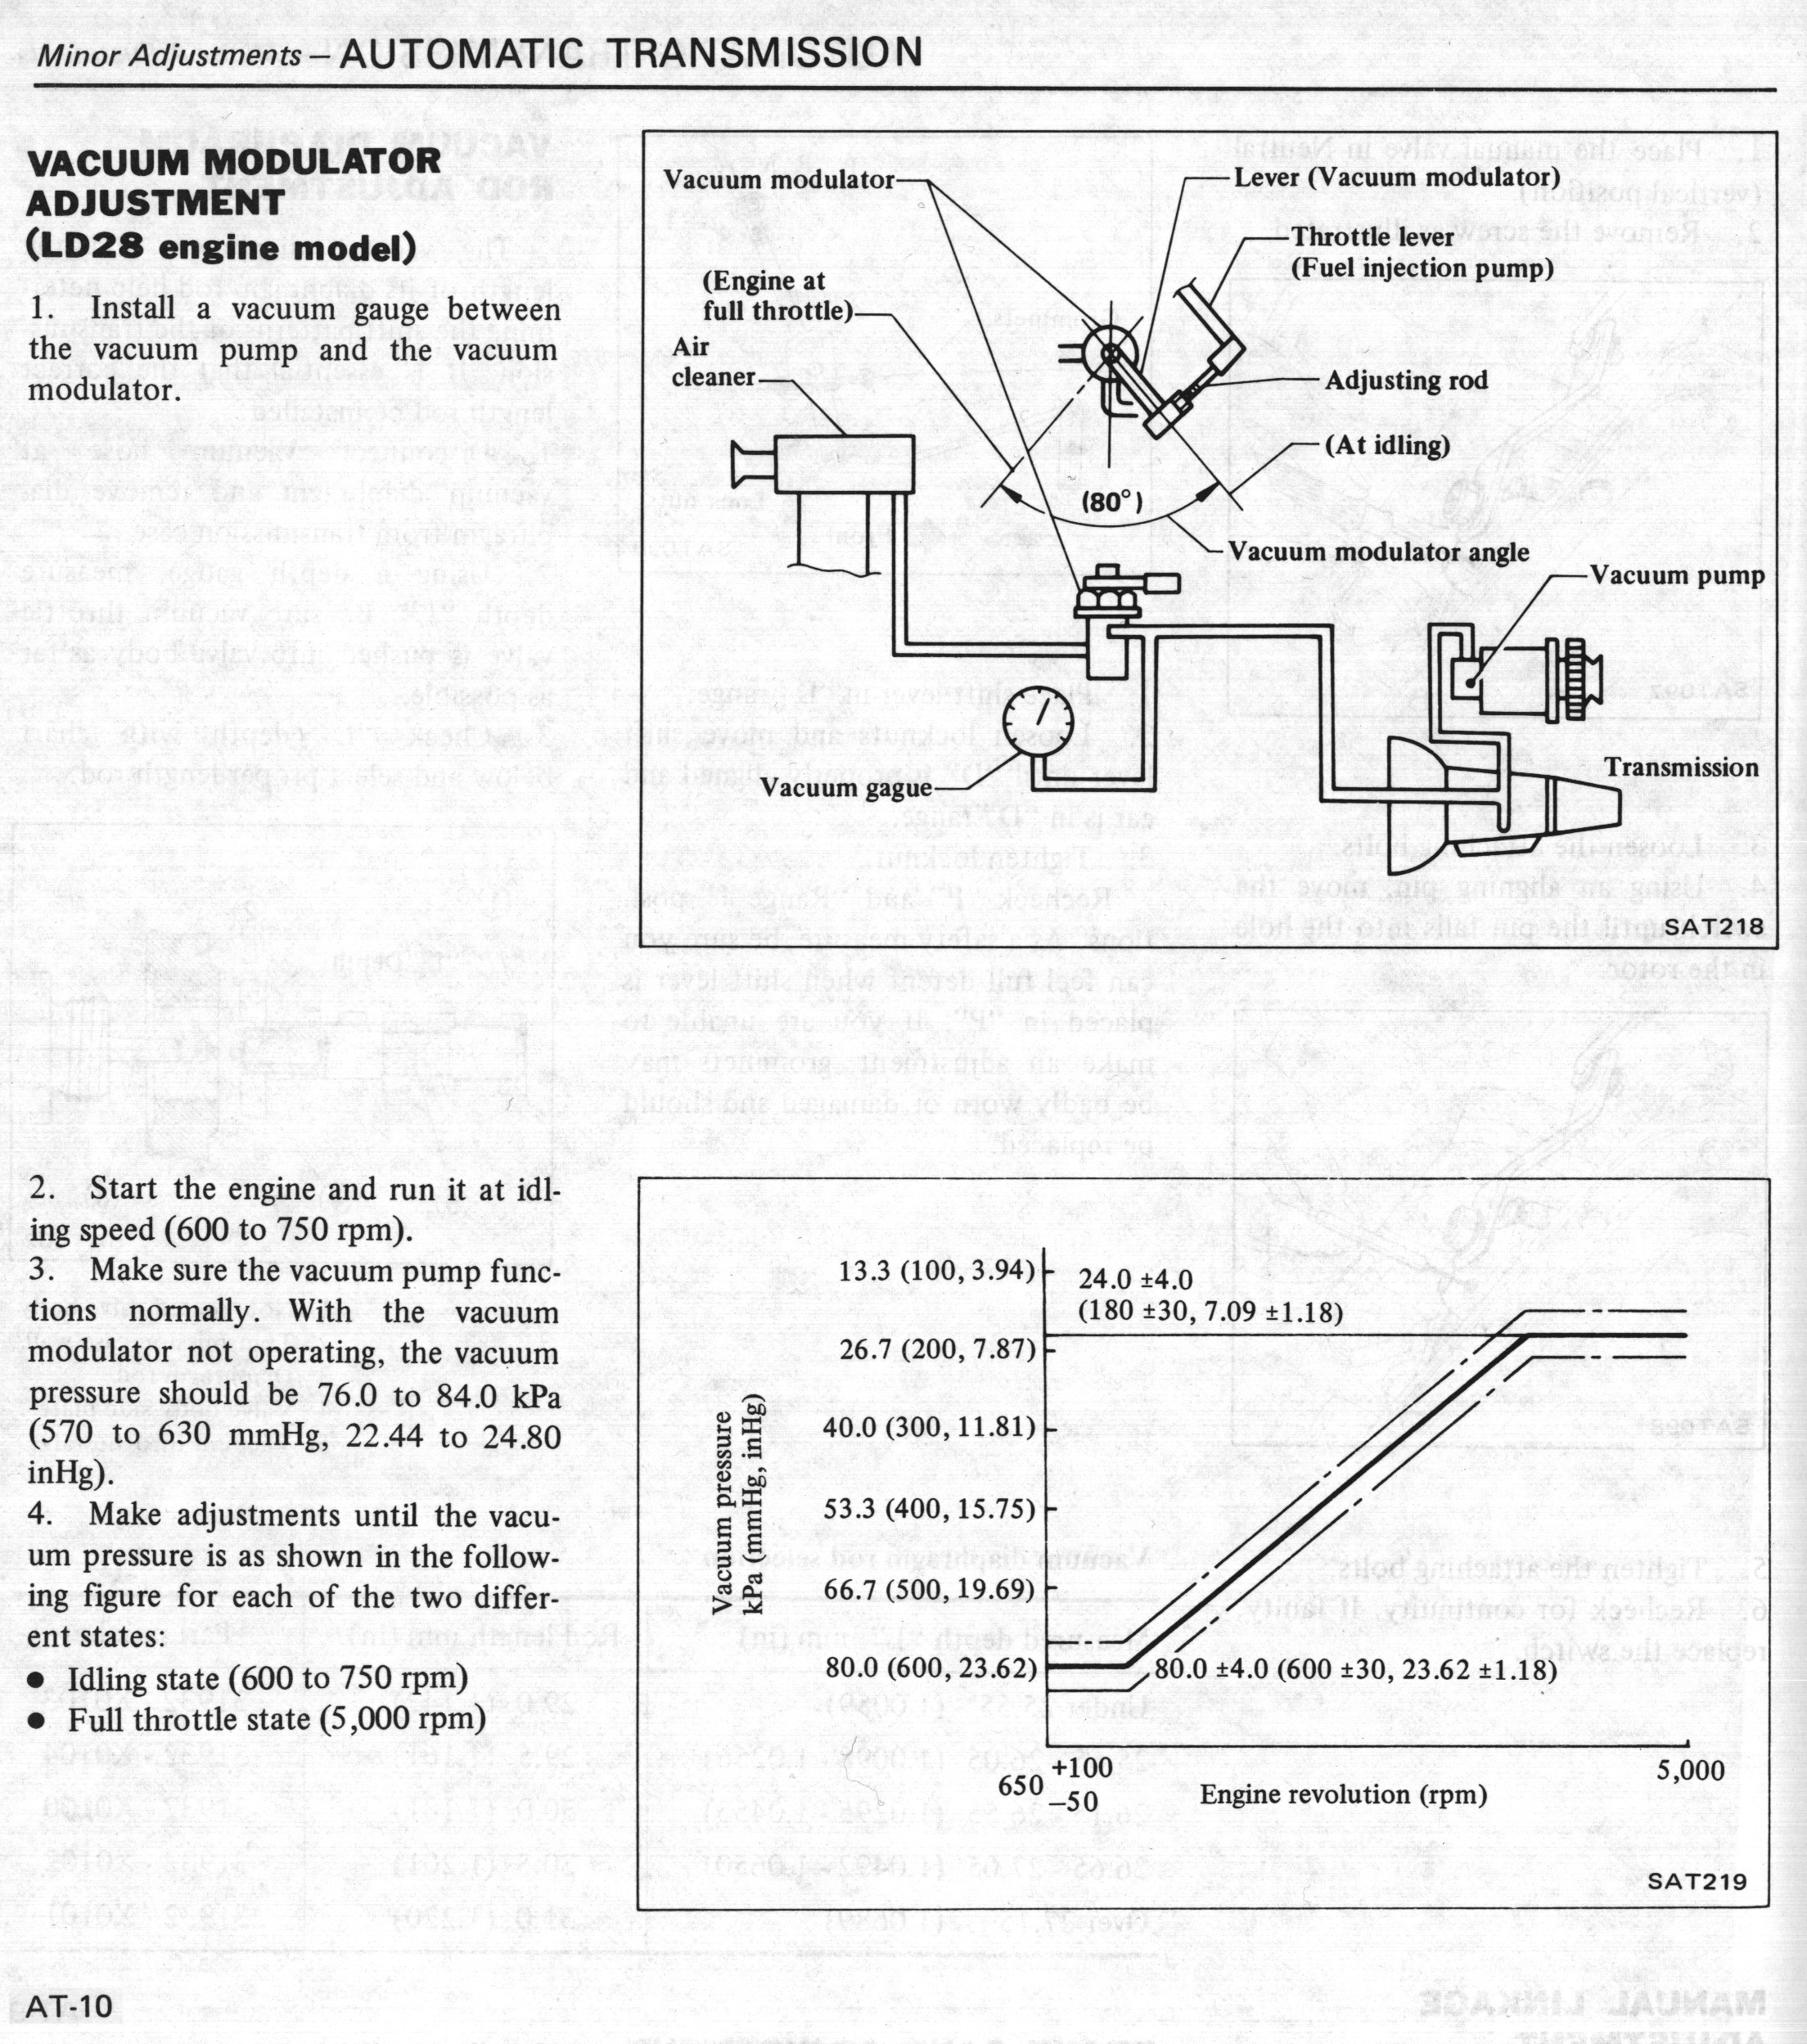 nissan laurel wiring diagram wiring diagrams nissan laurel wiring diagram wiring library 1984 nissan pick up wiring diagram nissan laurel wiring diagram